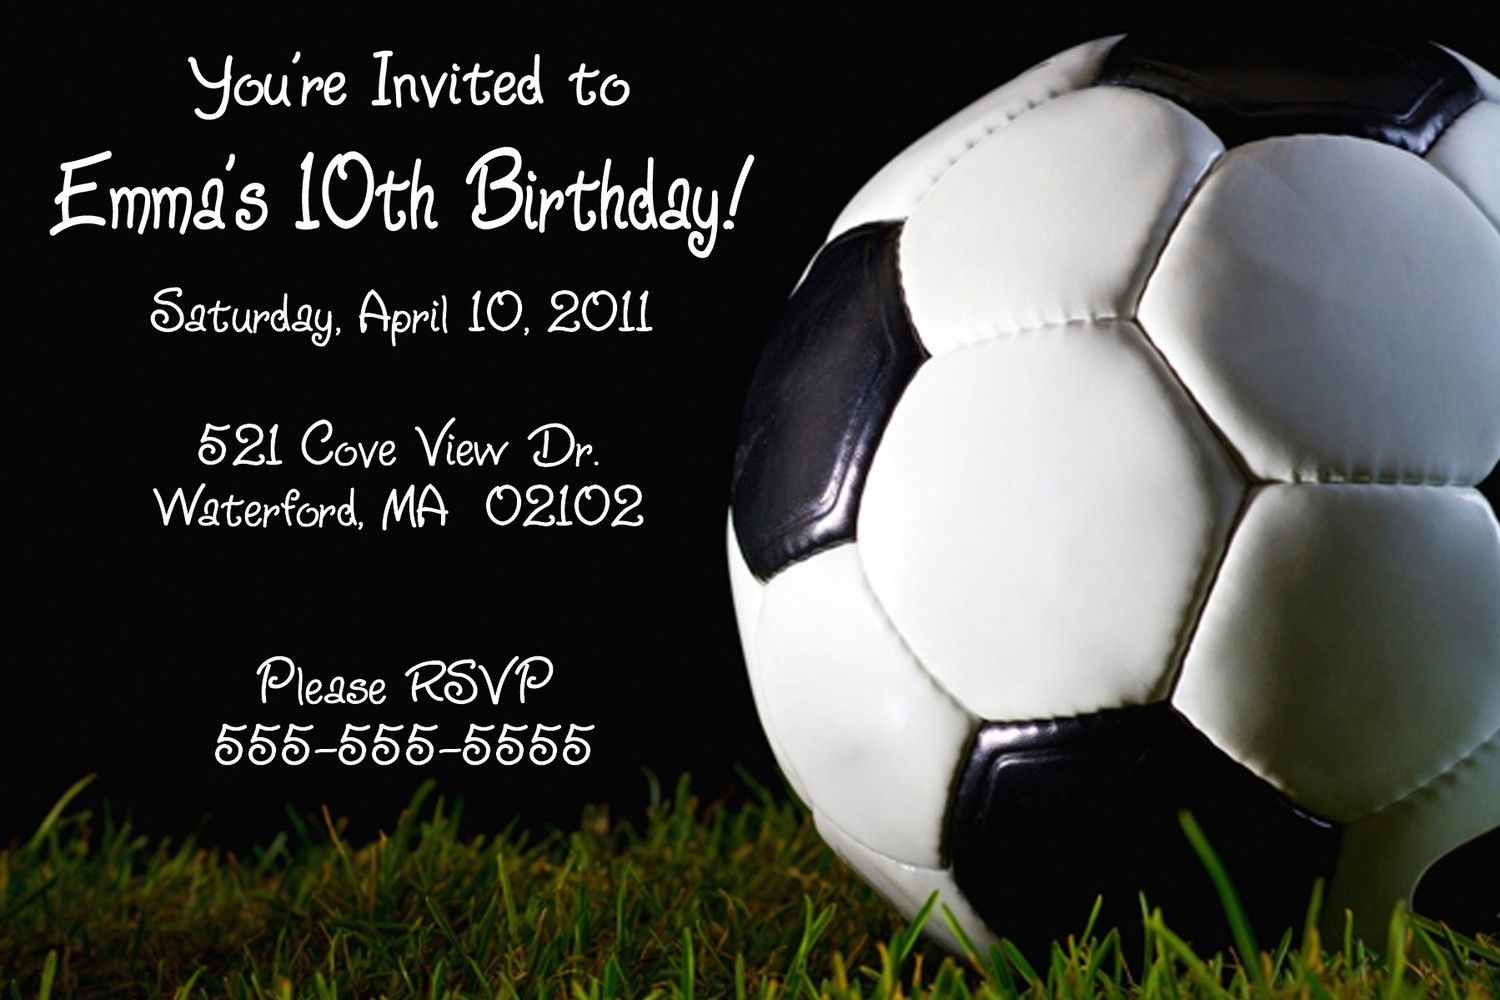 Printable Birthday Invitations Teenage Boys | Free Printable - Free Printable Soccer Birthday Invitations